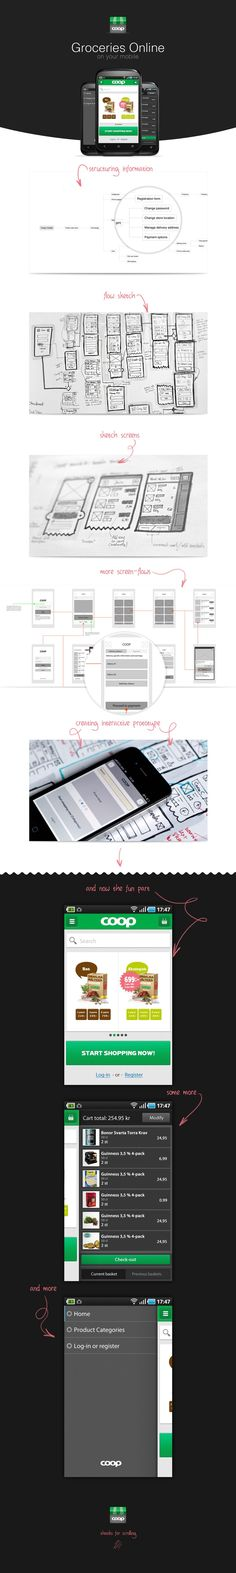 Coop Mobile App #Wireframes and #prototype #development. The UX Blog podcast is also available on iTunes.